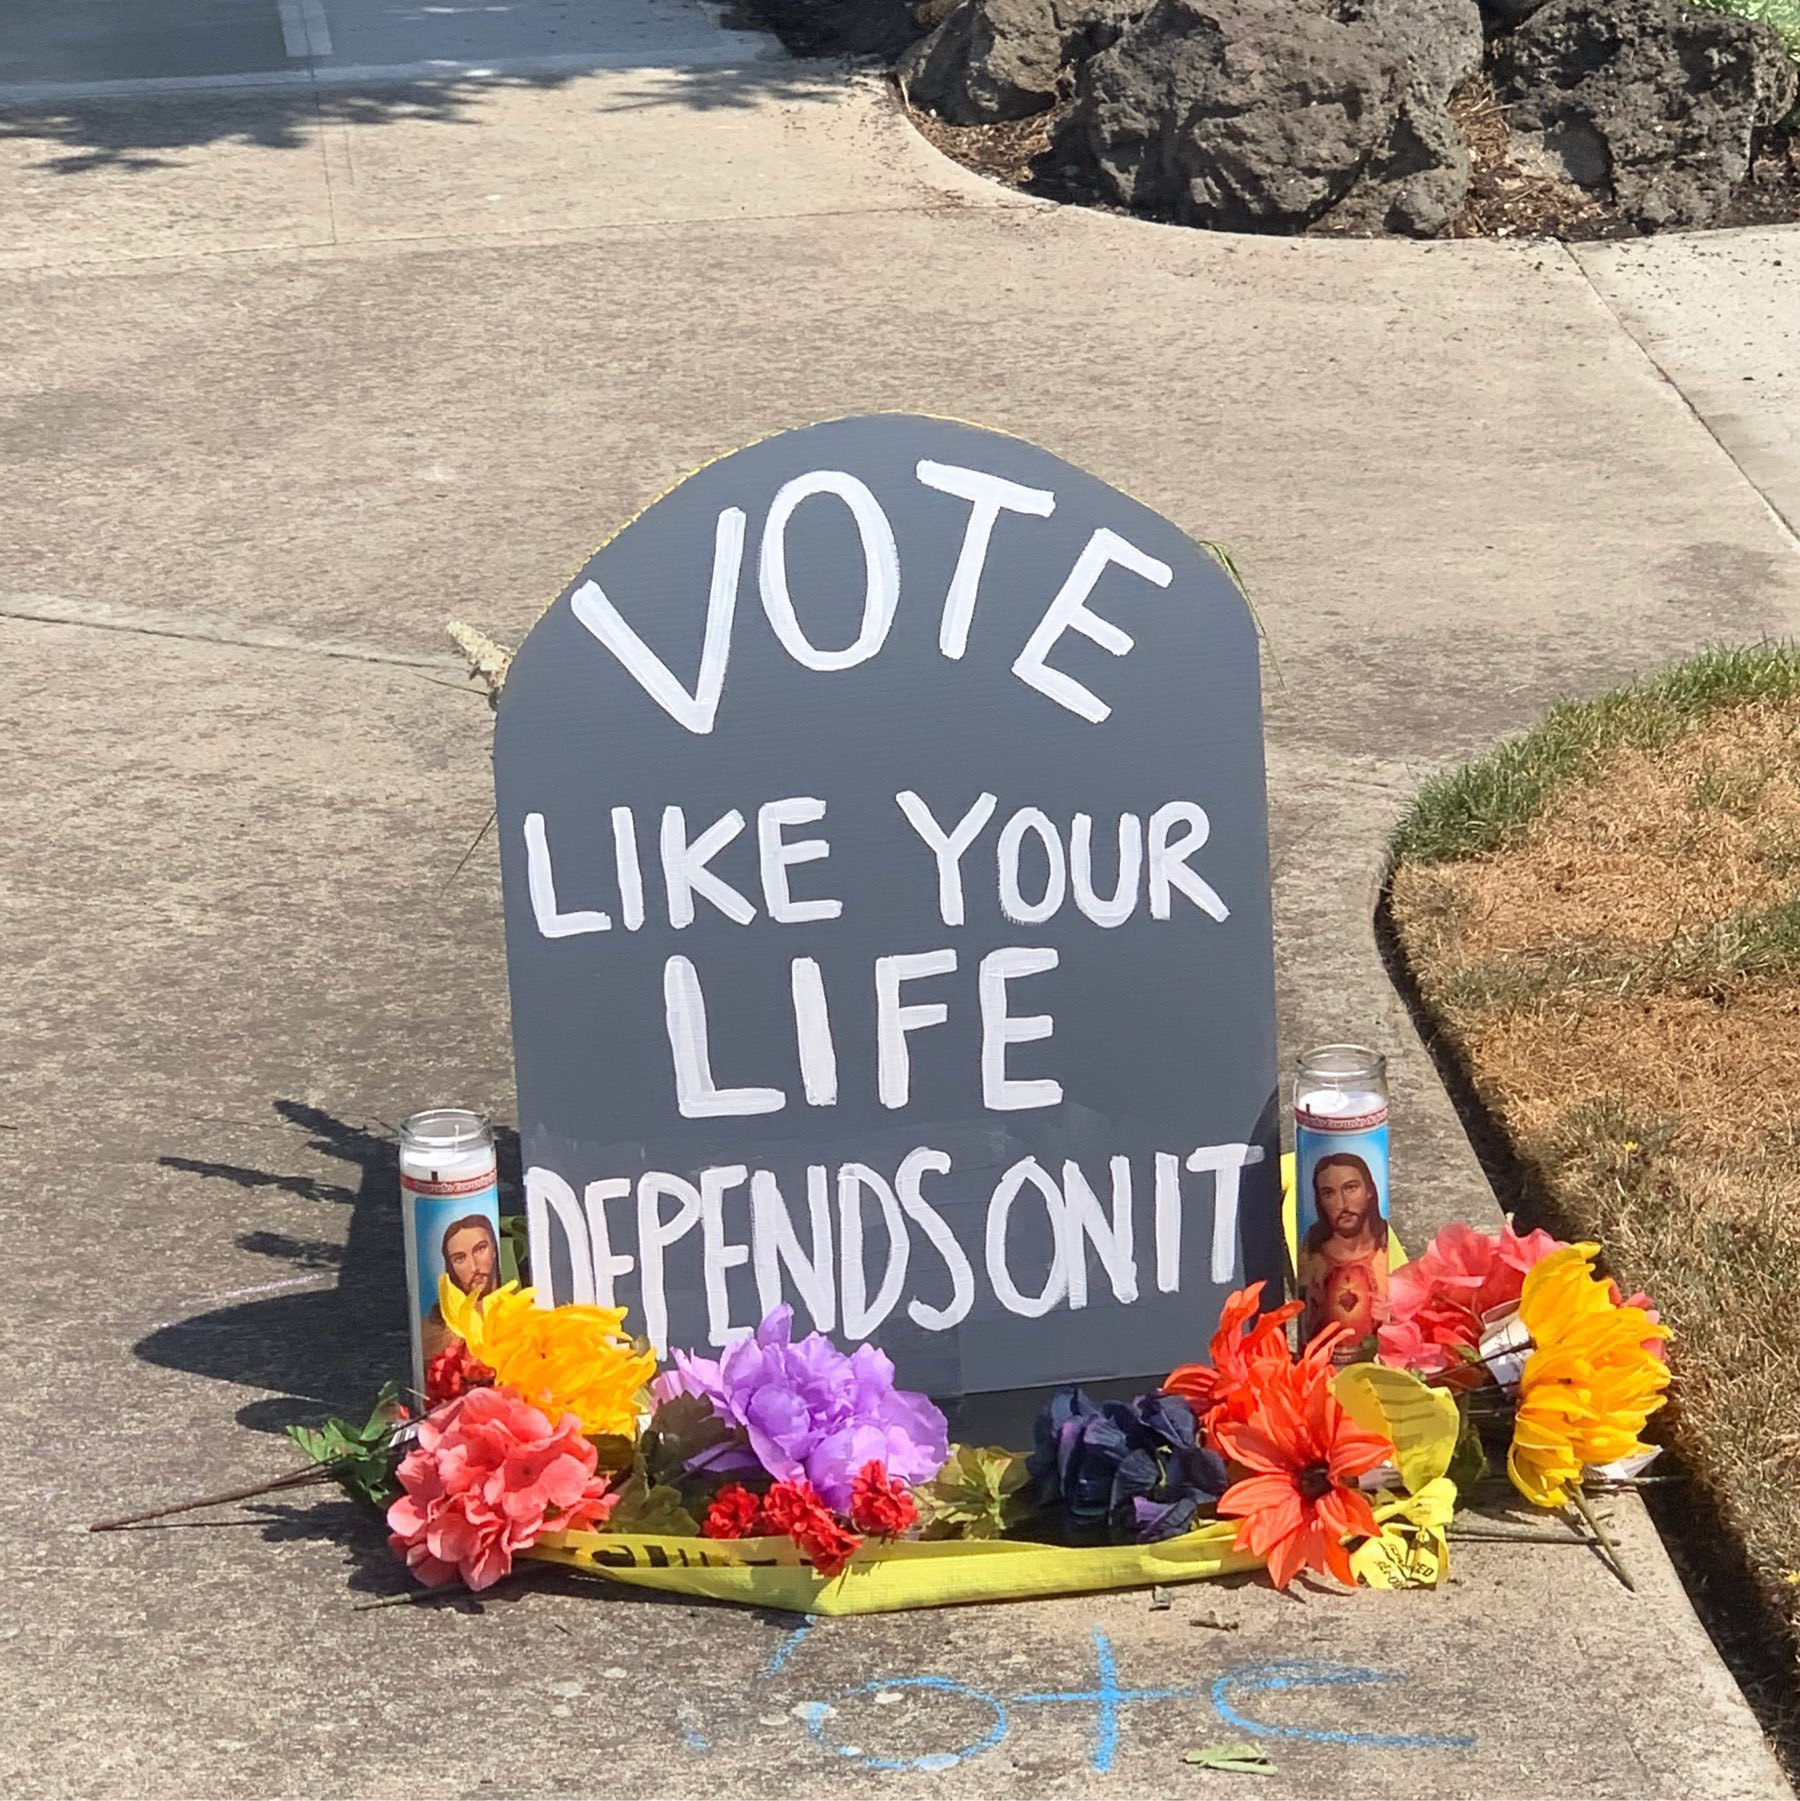 mock headstone. Vote as if your life depends on it.